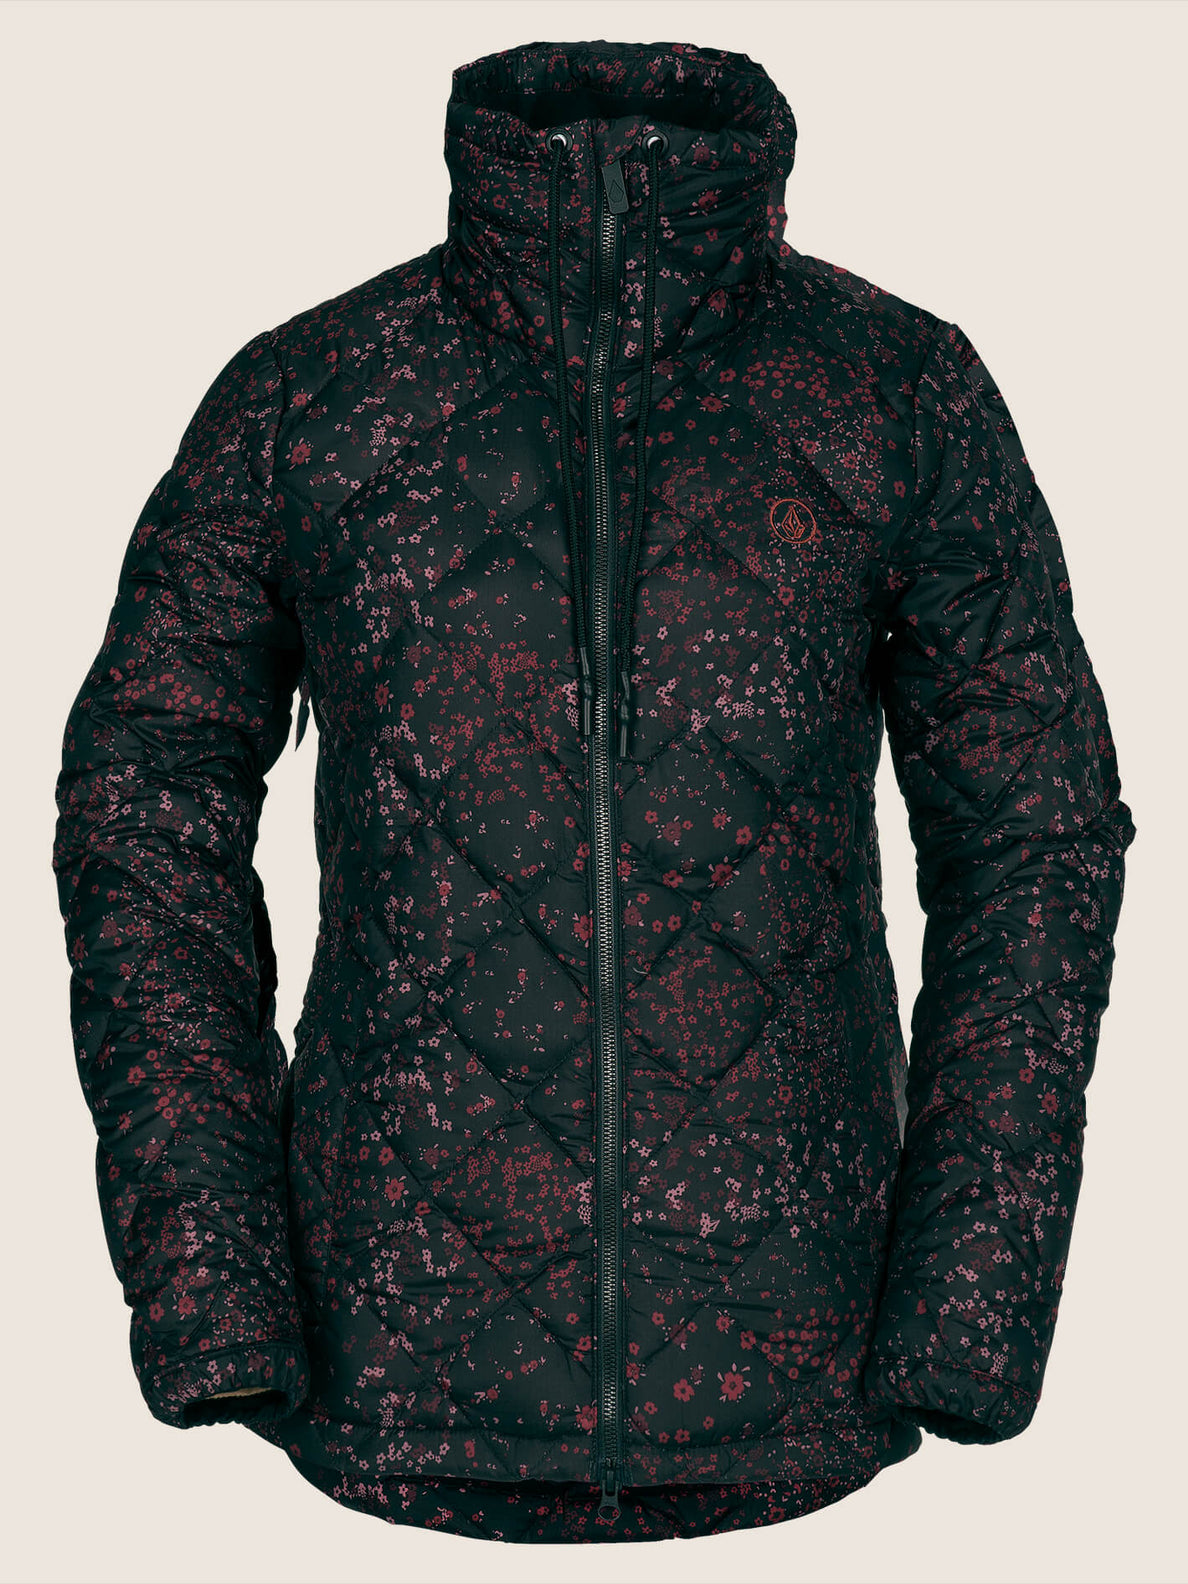 Skies Down Puff Jacket In Black Floral Print, Front View